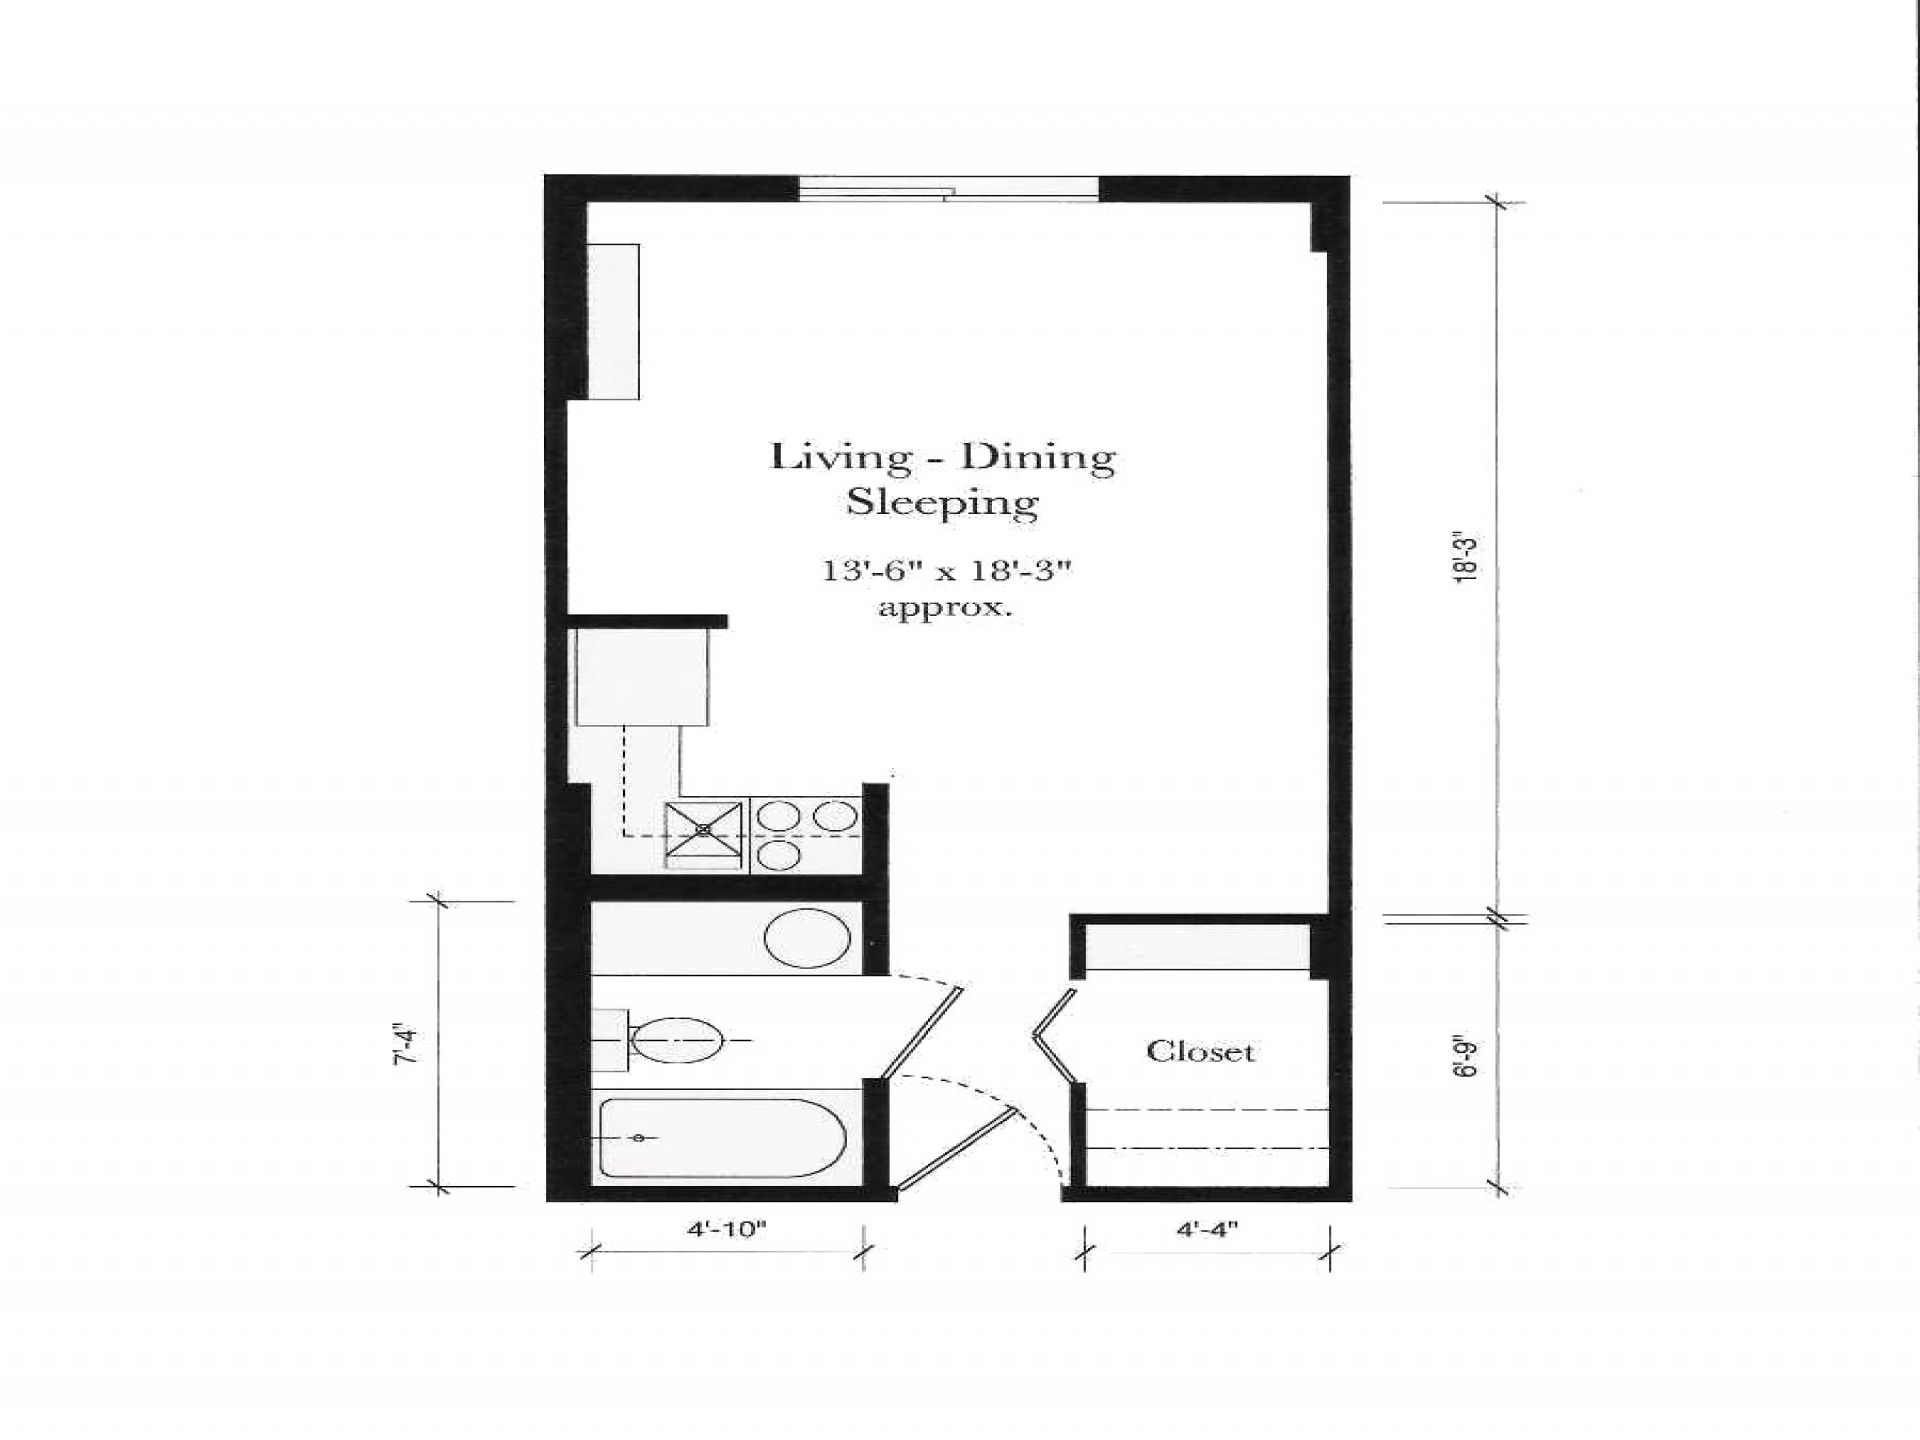 Apartment studio floor plan simple floor design studio for Apartment design layout